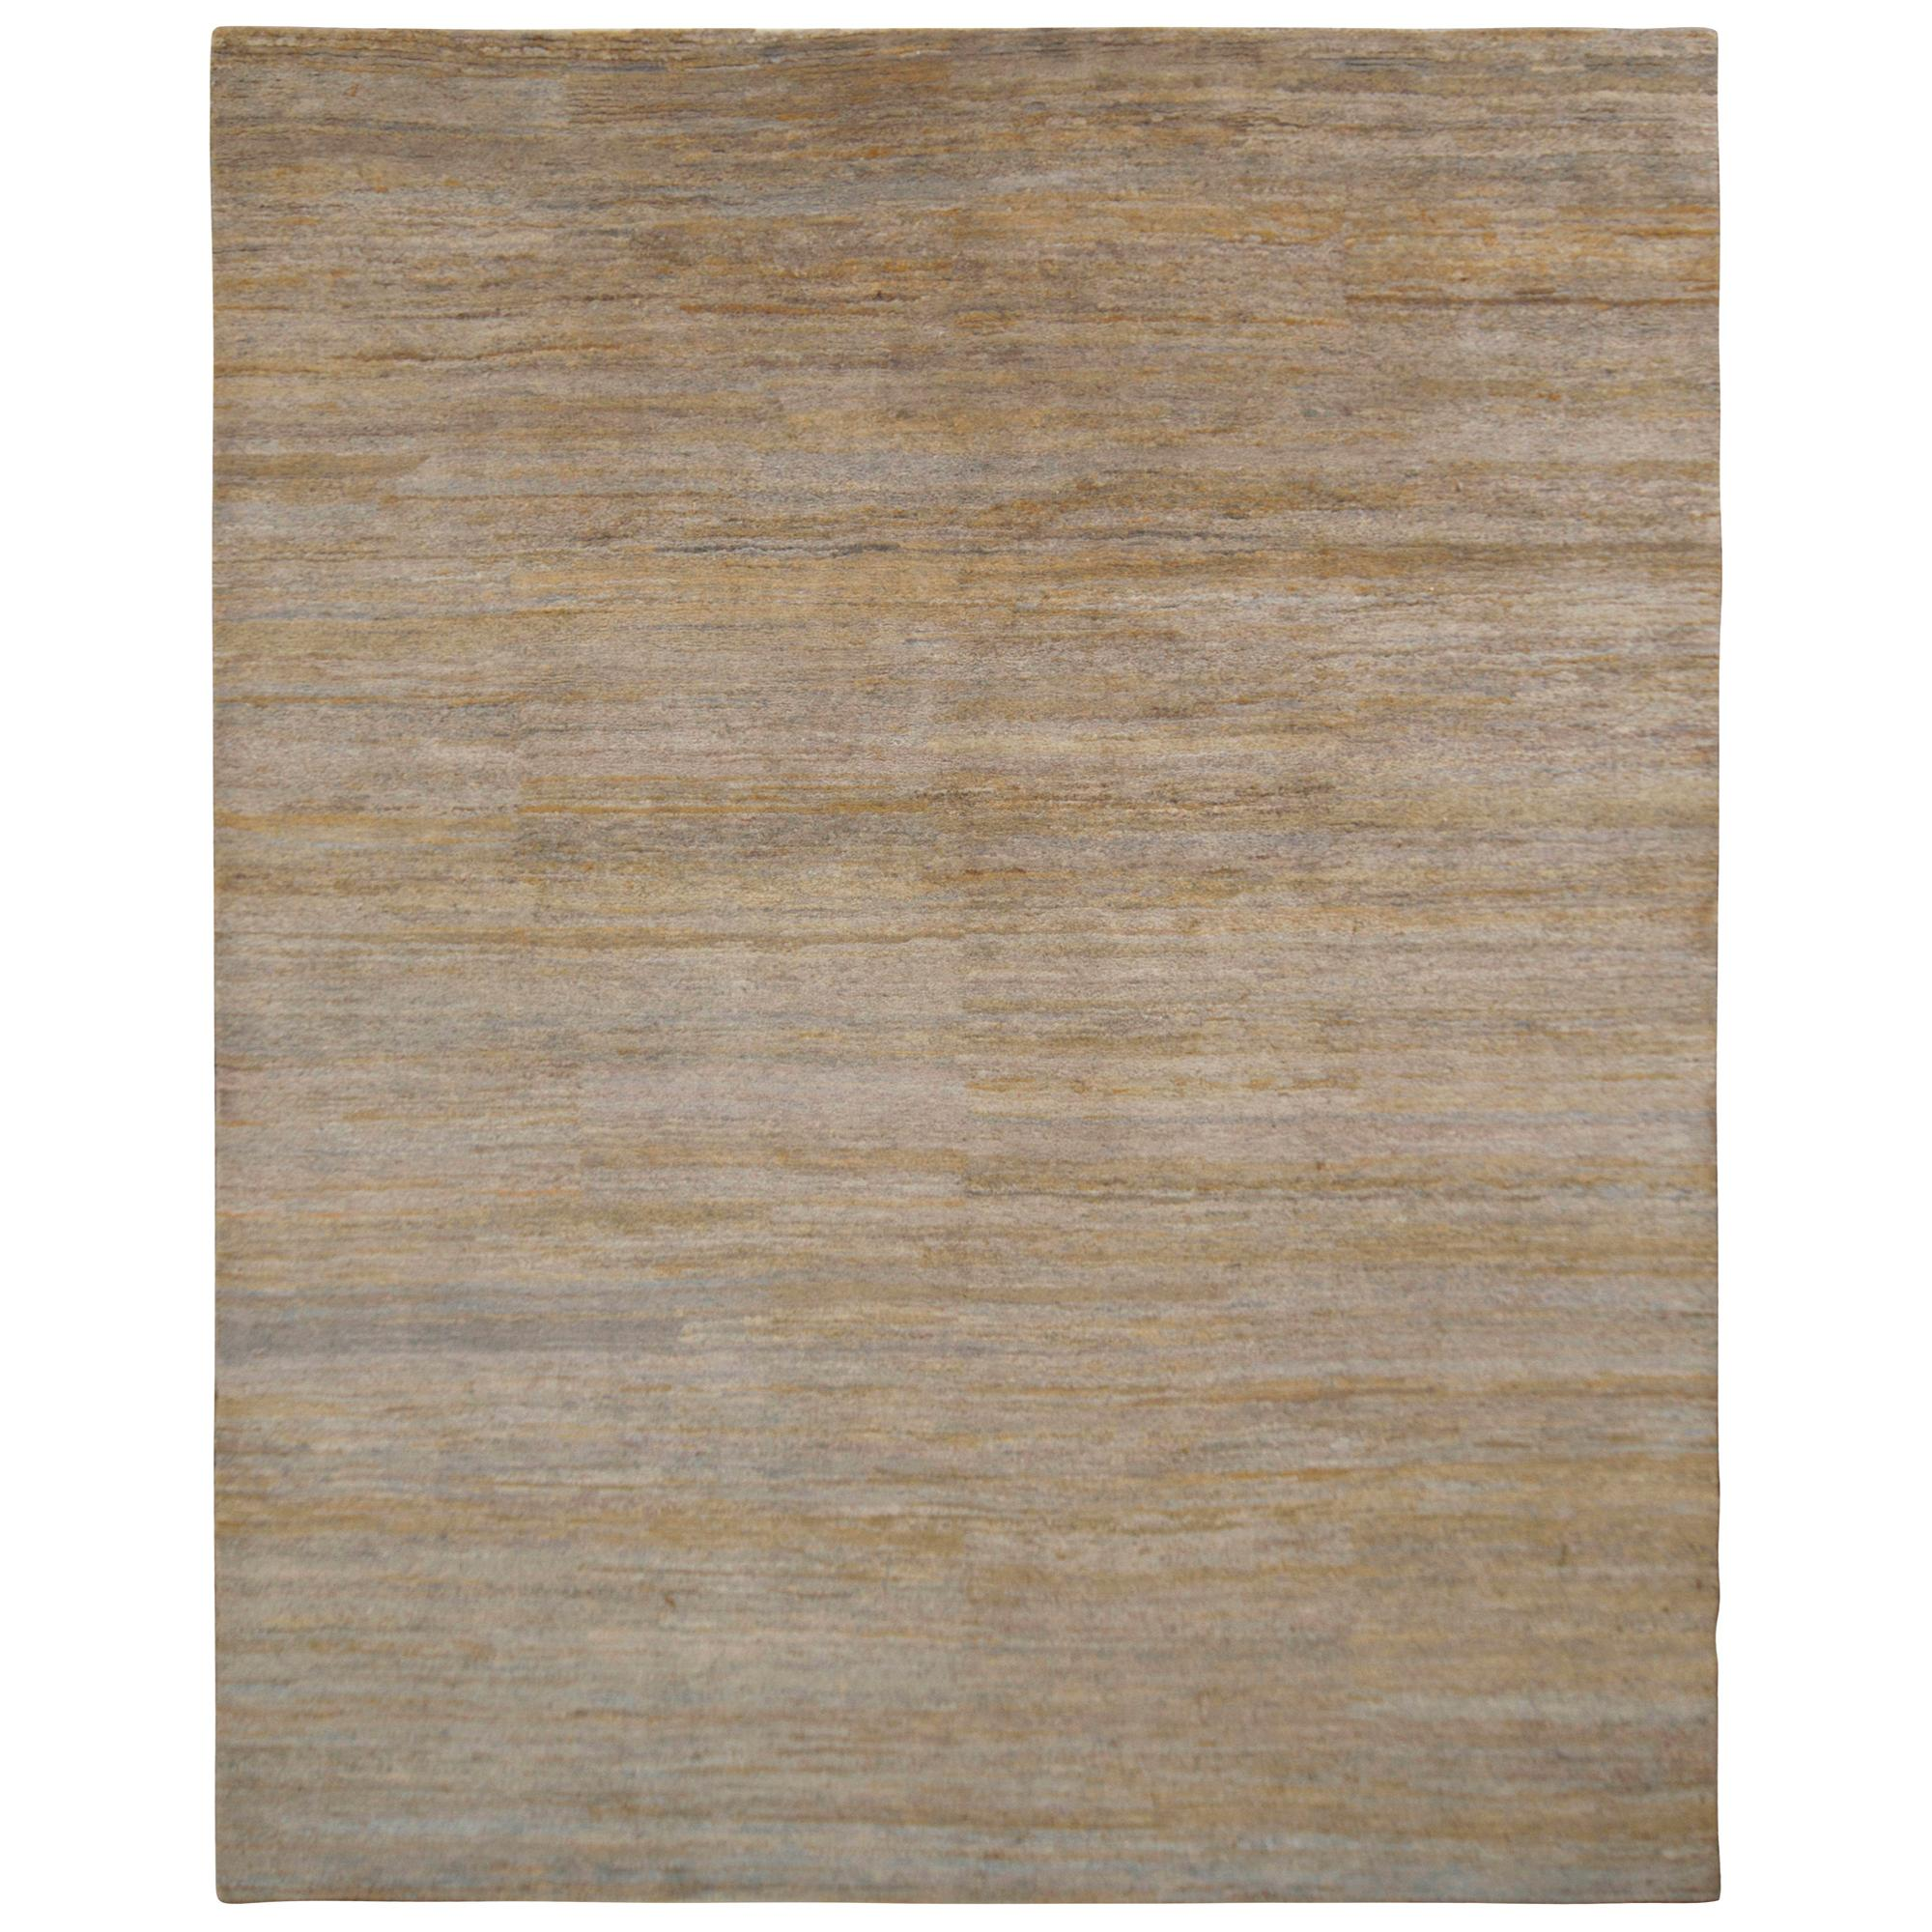 Rug & Kilim's Handmade Contemporary Rug Gray Beige Striped Pattern